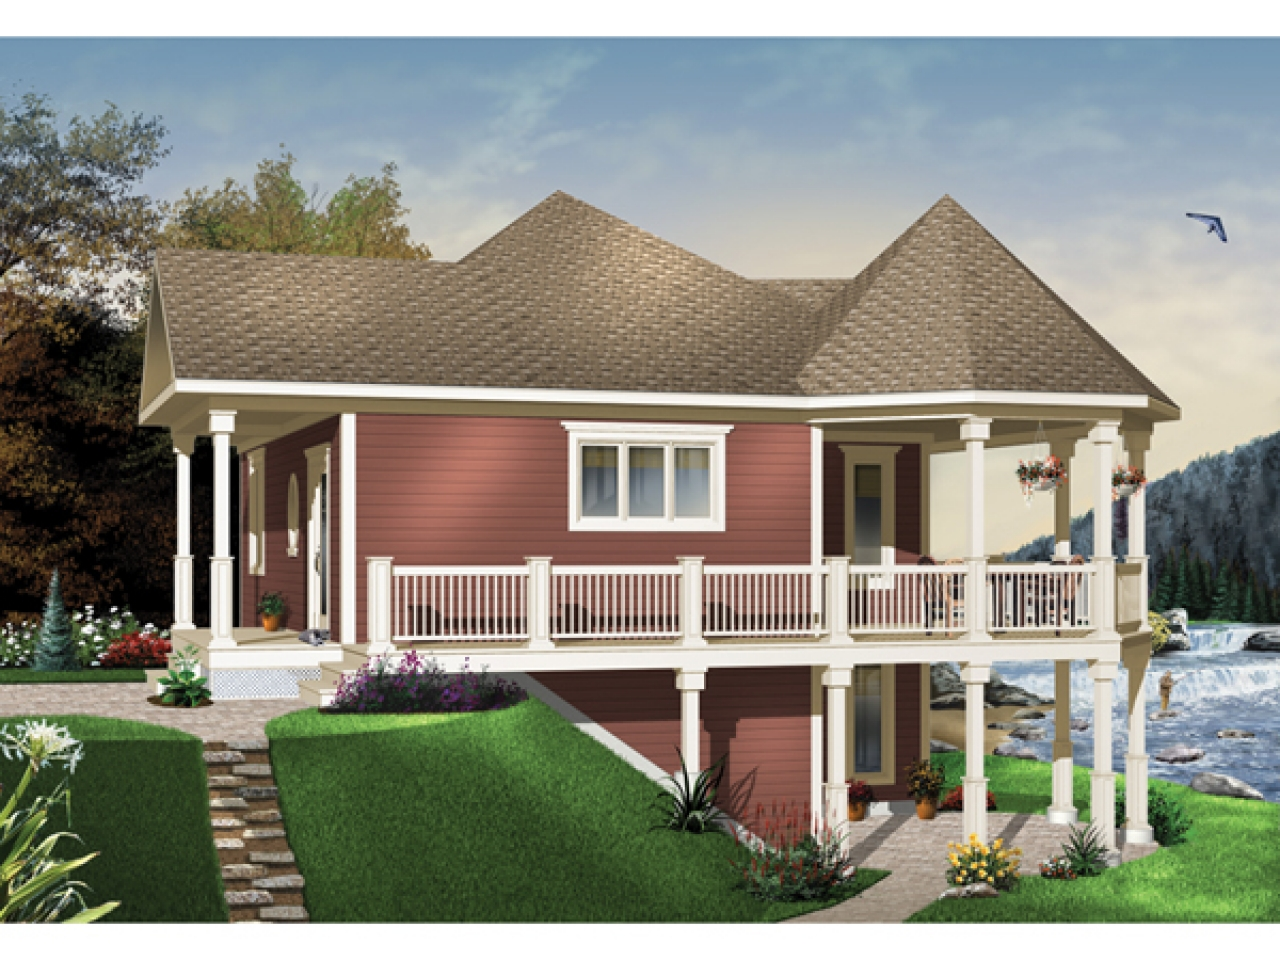 Waterfront house plans with walkout basement small house for Waterfront home plans